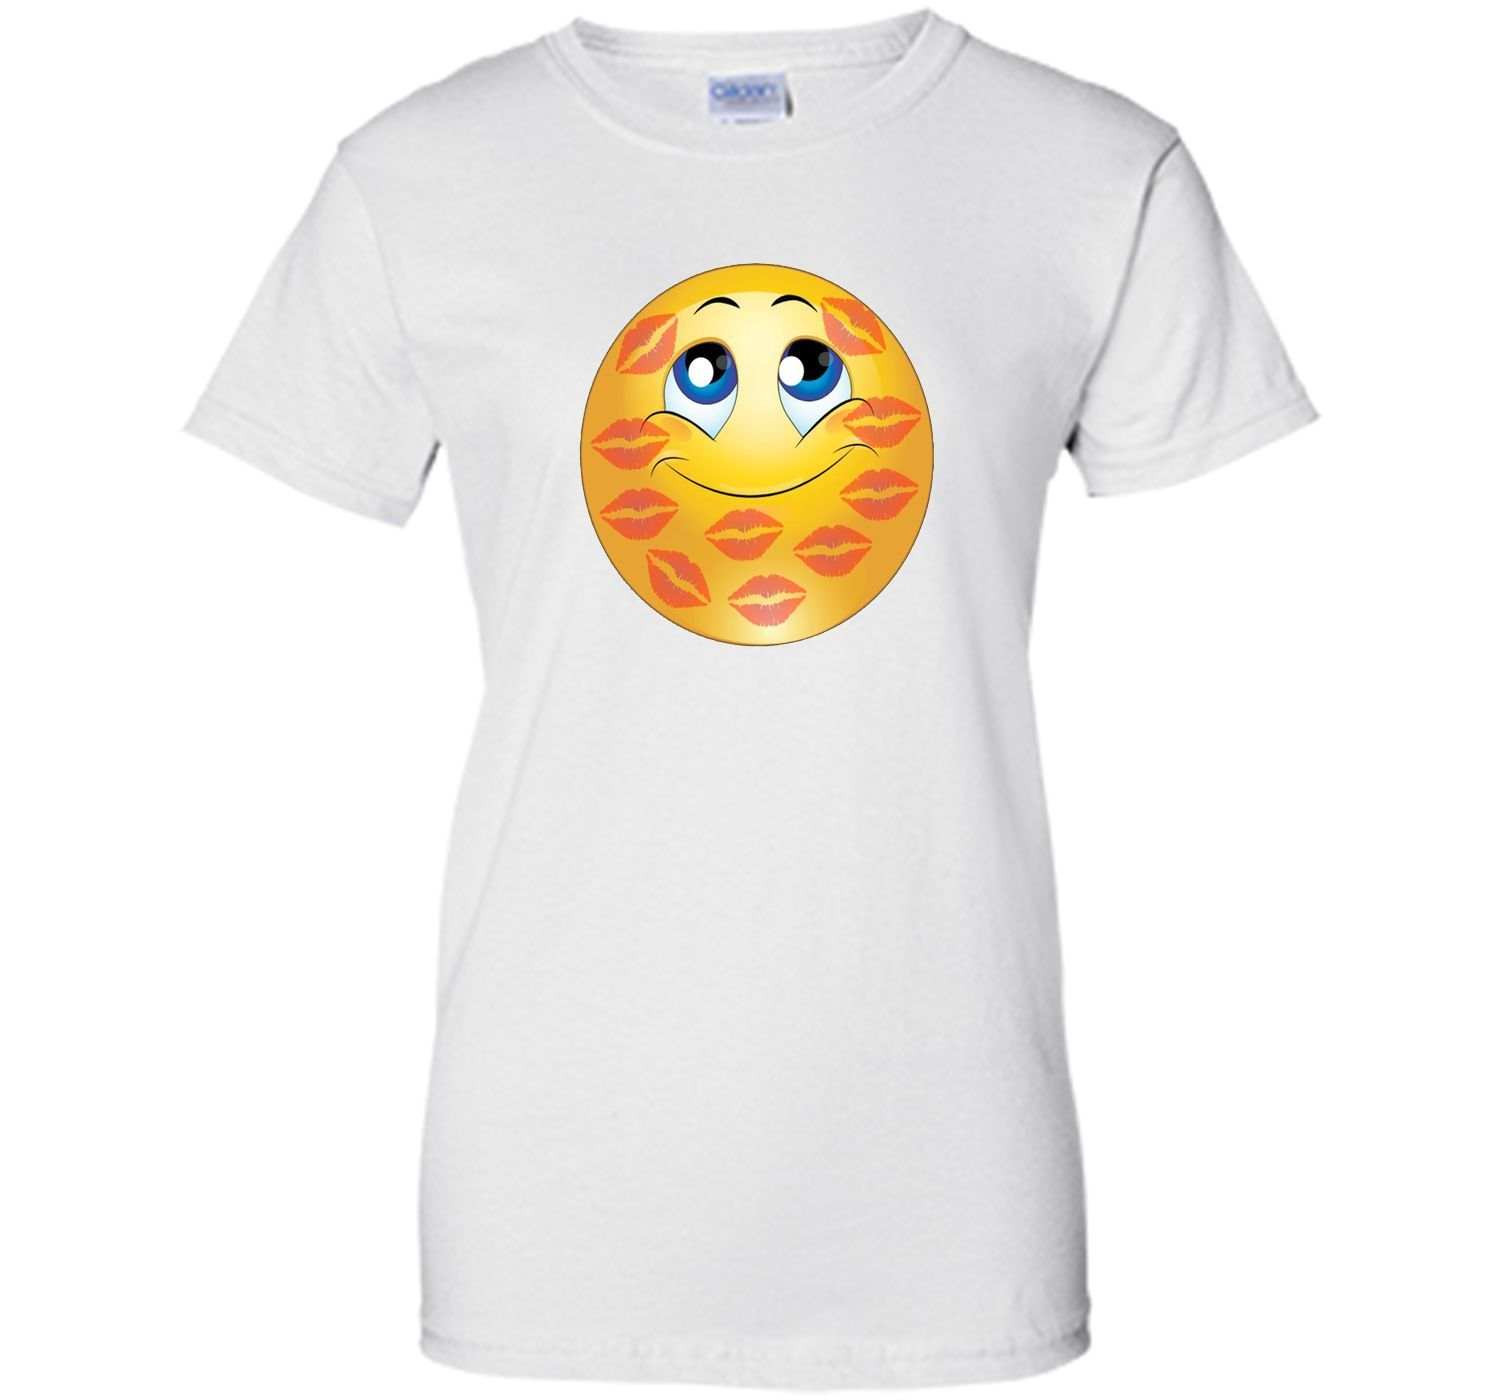 Emoji Valentine's Day Shirt For Toddlers Boys Cute